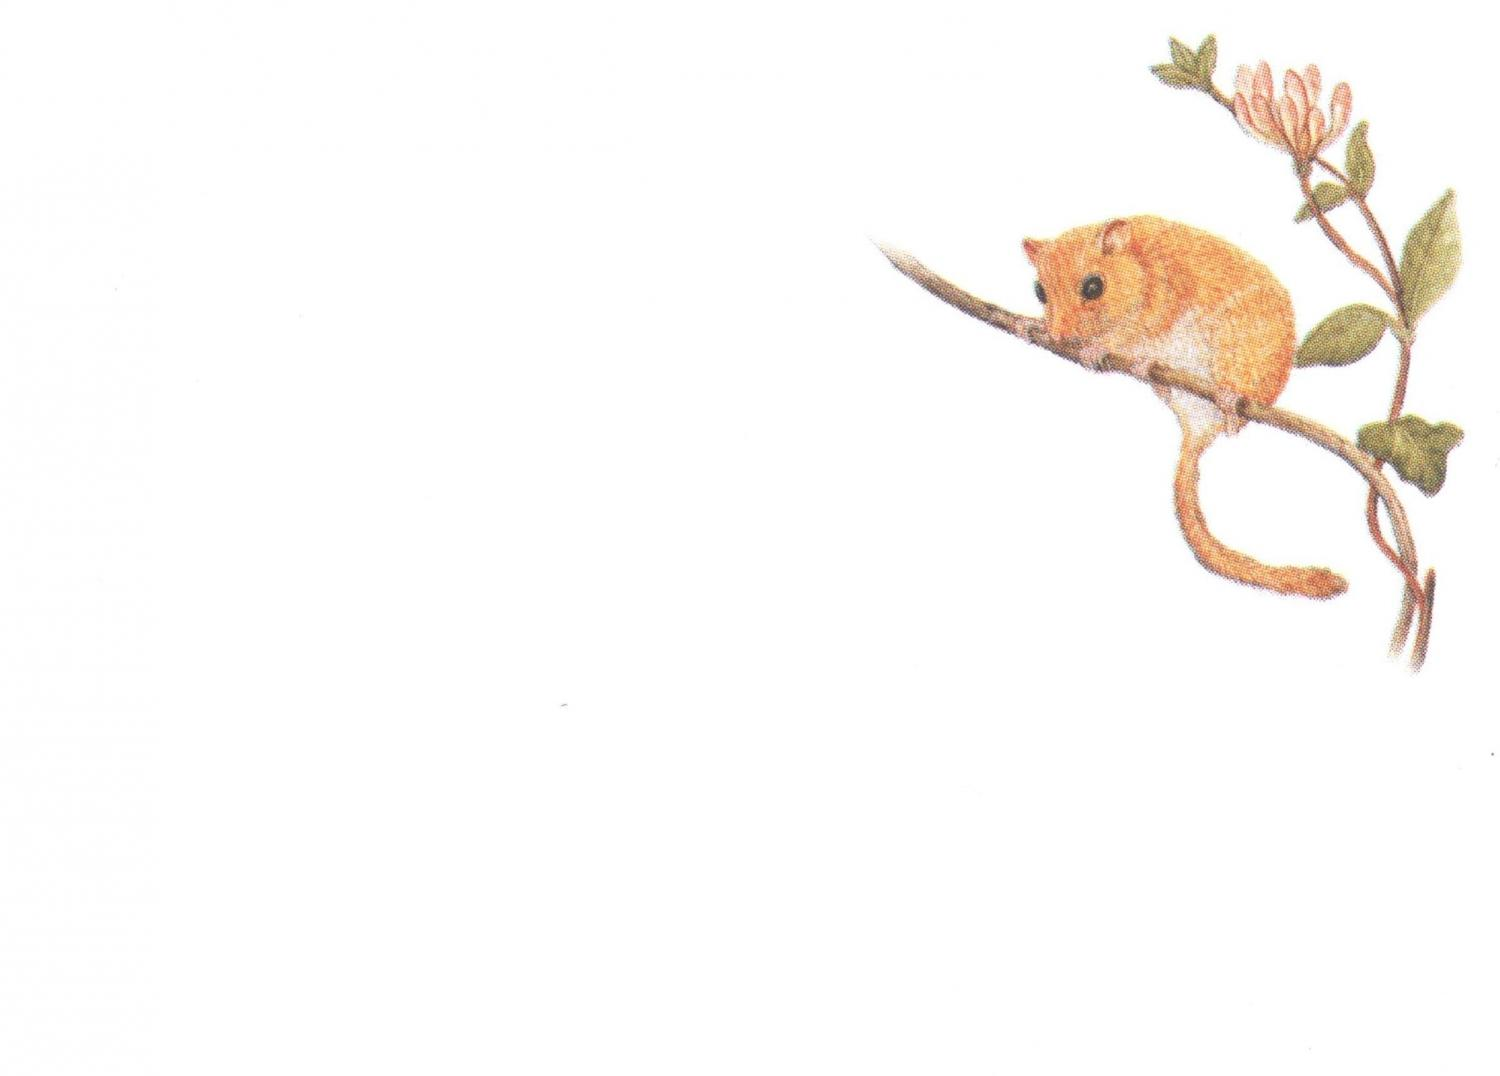 Sticky Notes in Holder - Dormouse